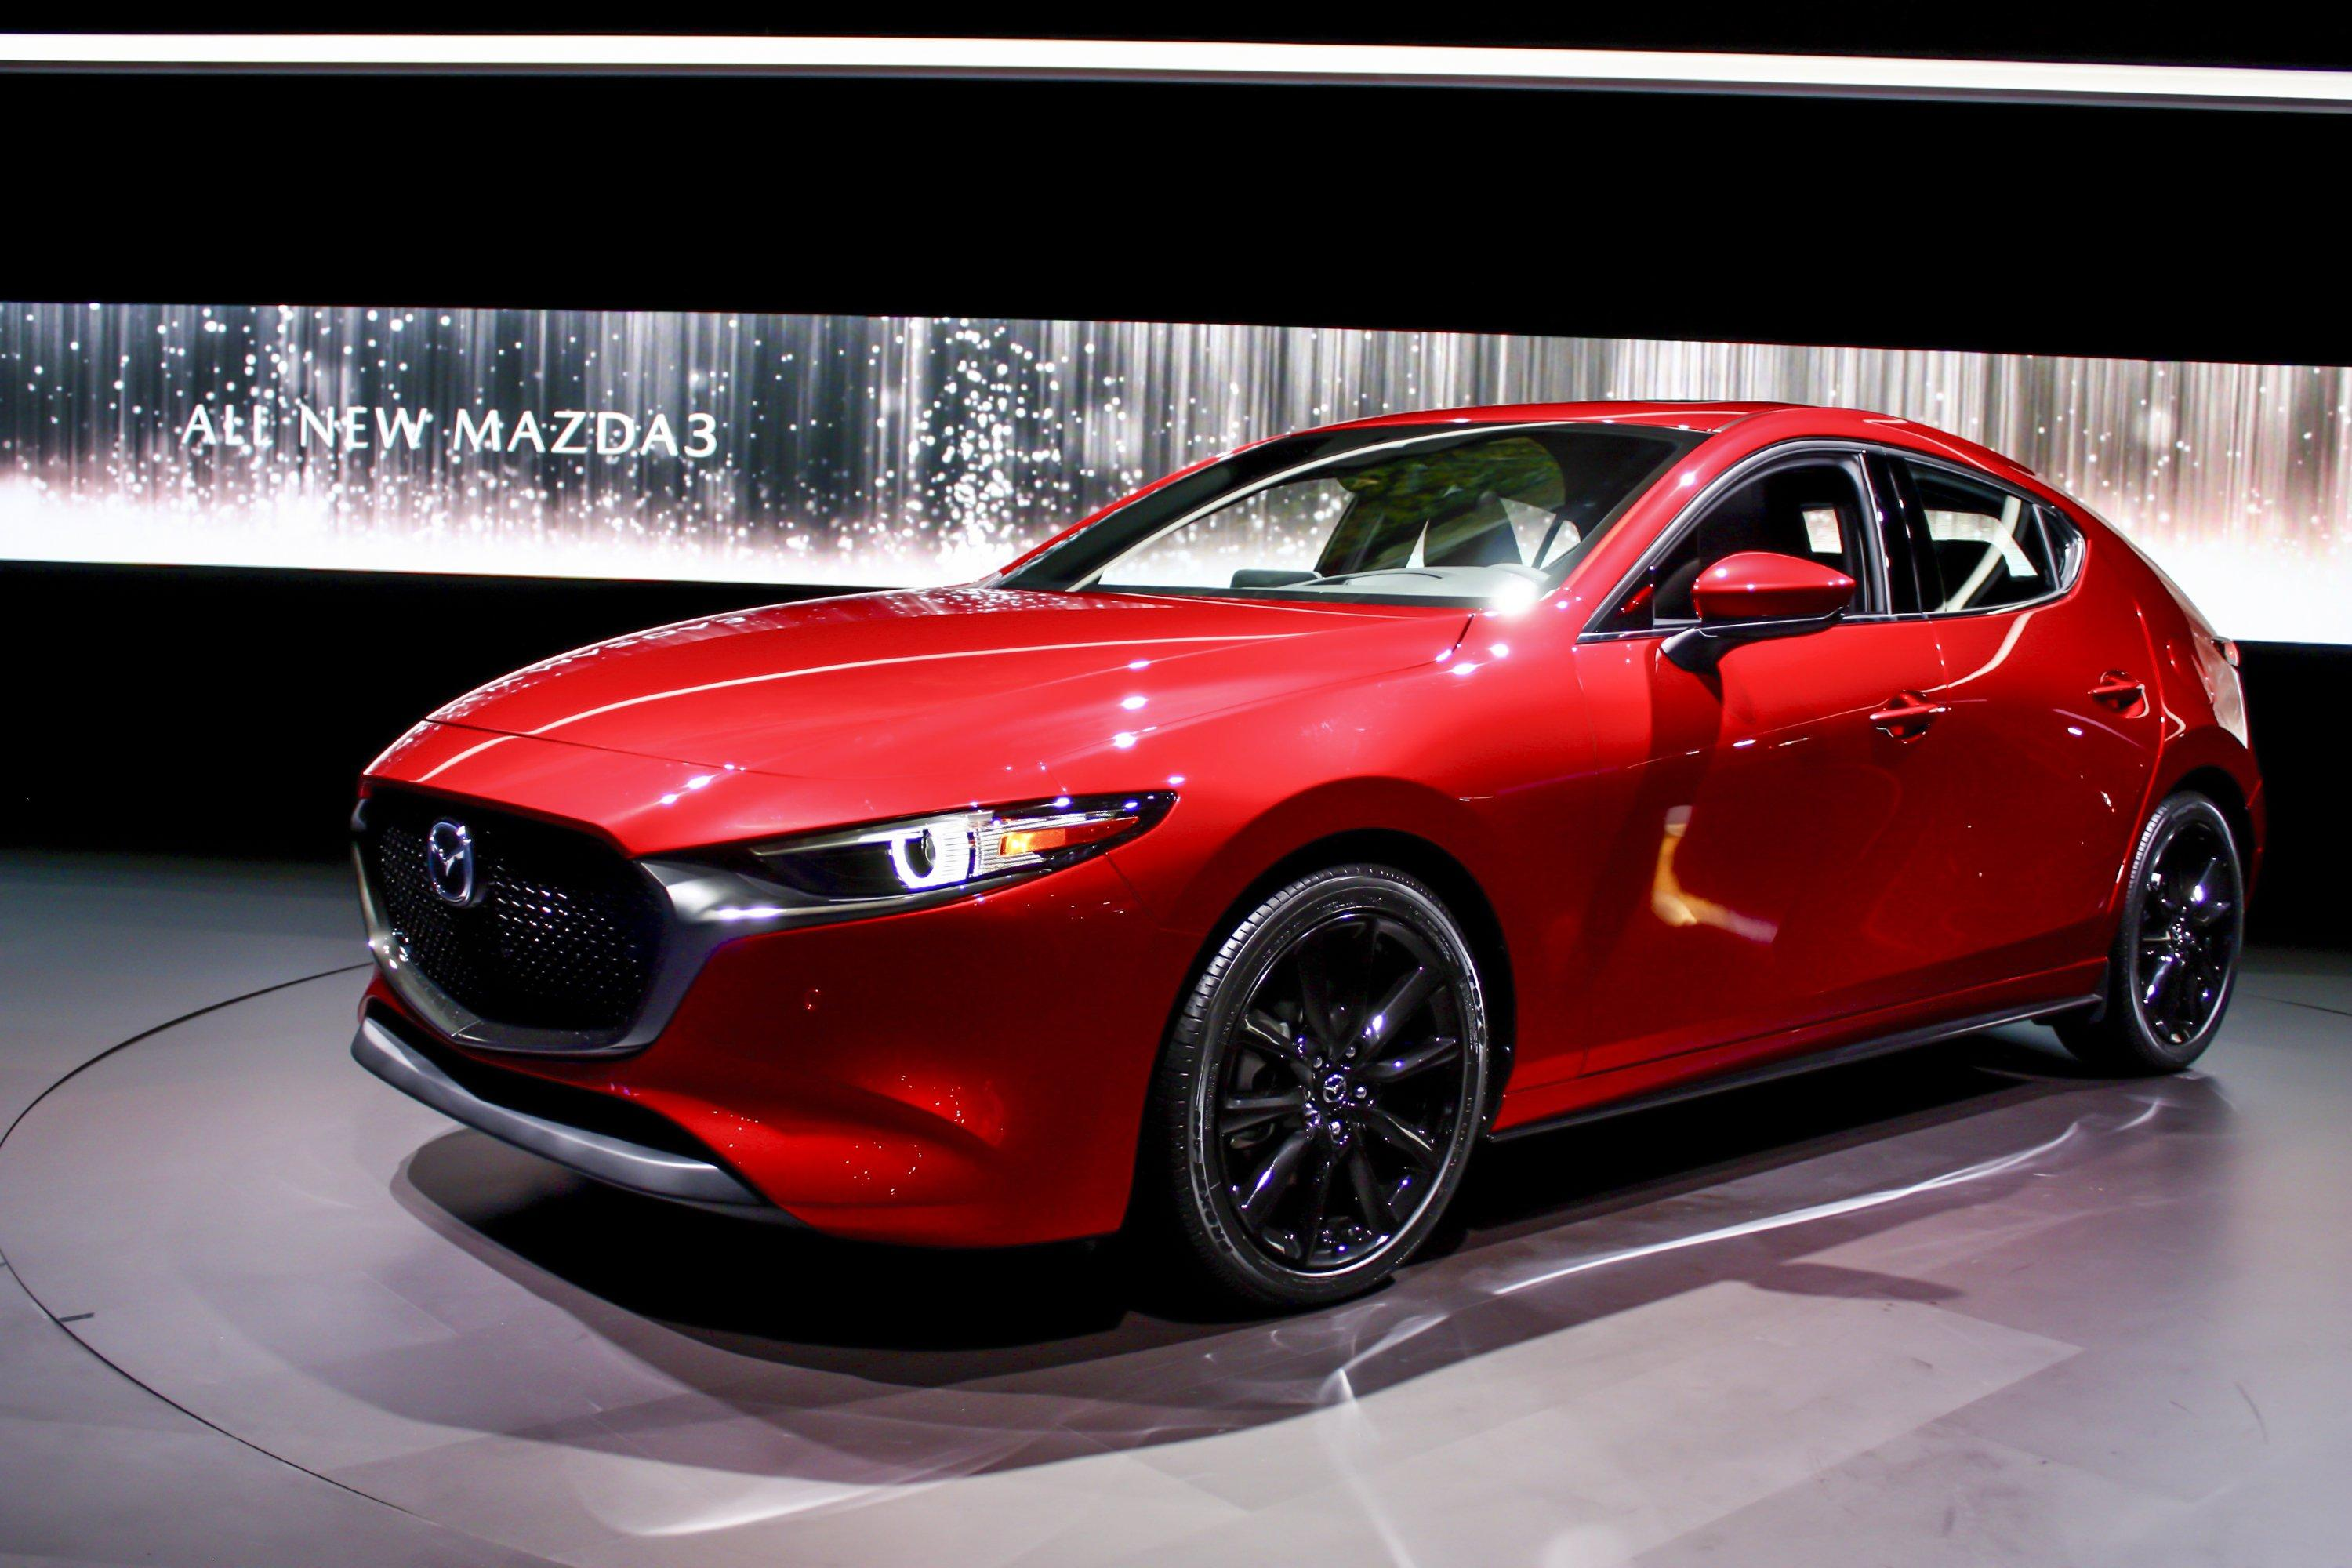 2019 Mazda 3 Pictures, Photos, Wallpapers.